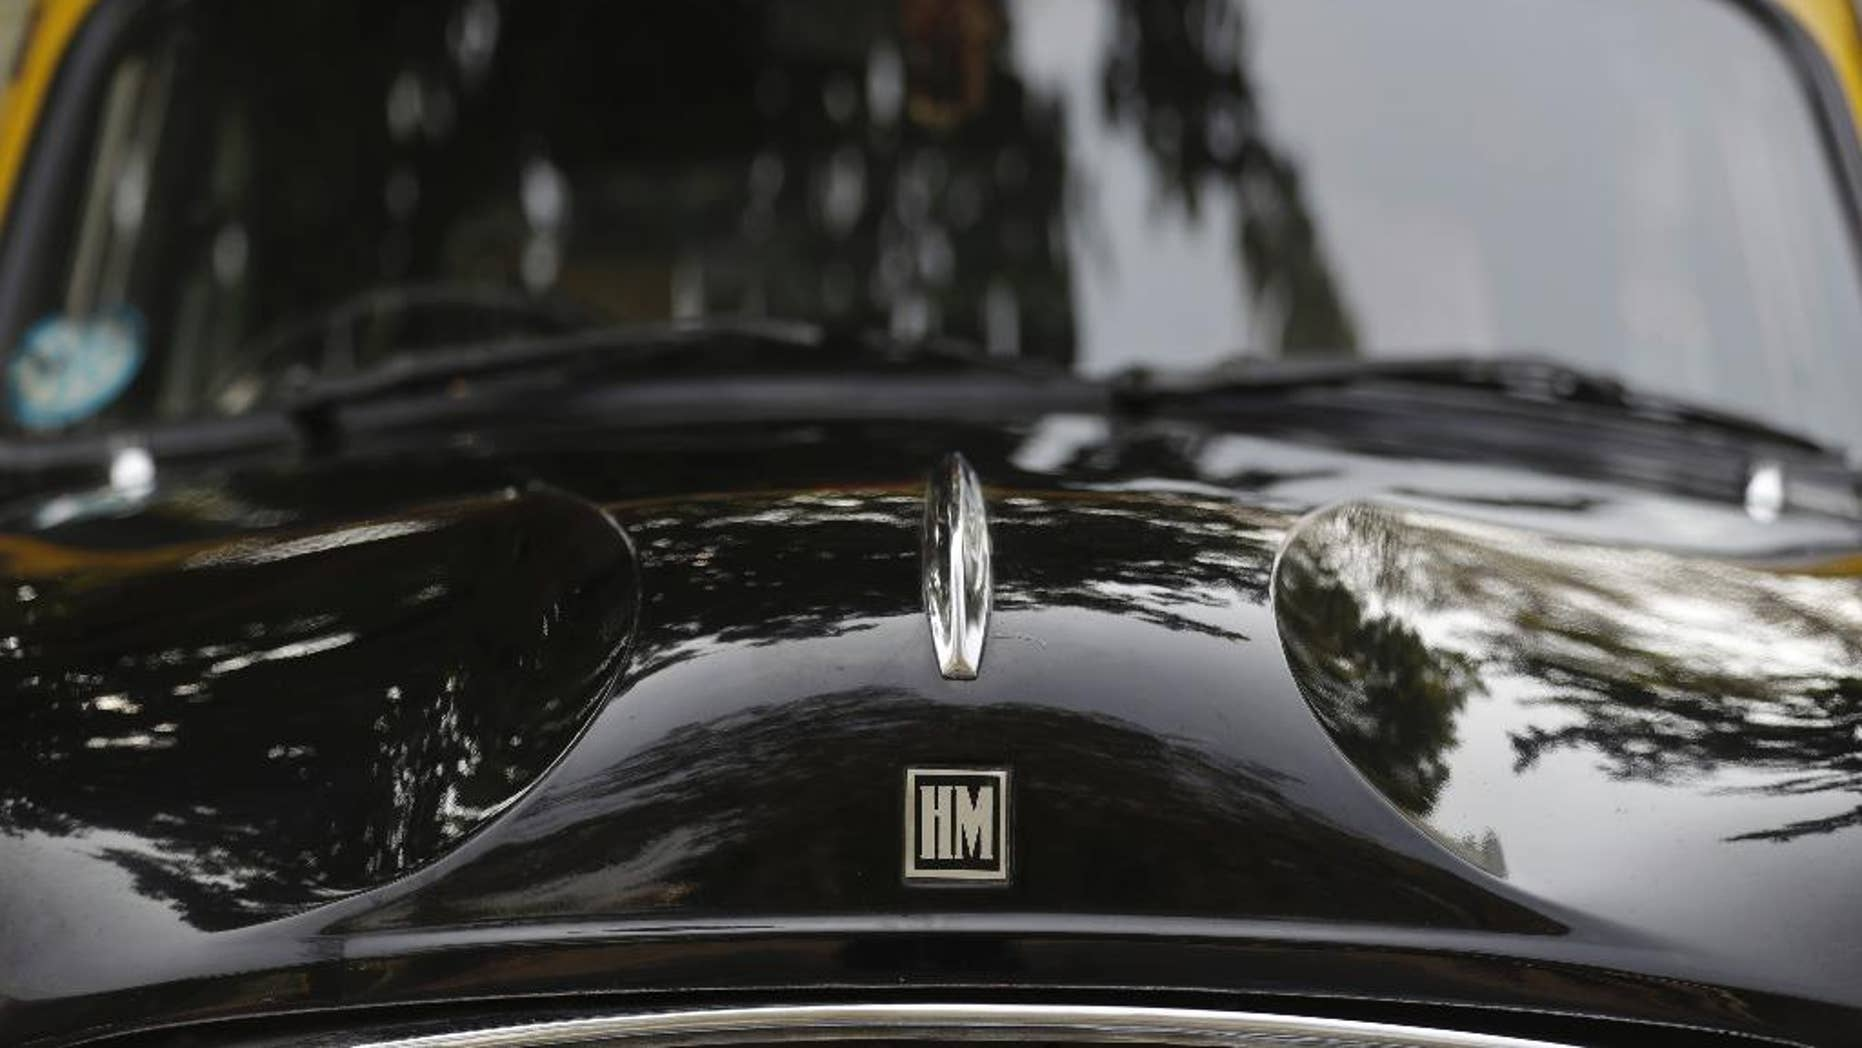 Close up Hindustan Ambassadors taxi in New Delhi, India, Monday, Feb. 13, 2017. Over the weekend, the C.K. Birla Group that owns Hindustan Motors said it had signed an agreement with Peugeot SA to sell the Ambassador for 800 million rupees ($12 million). (AP Photo/Tsering Topgyal)